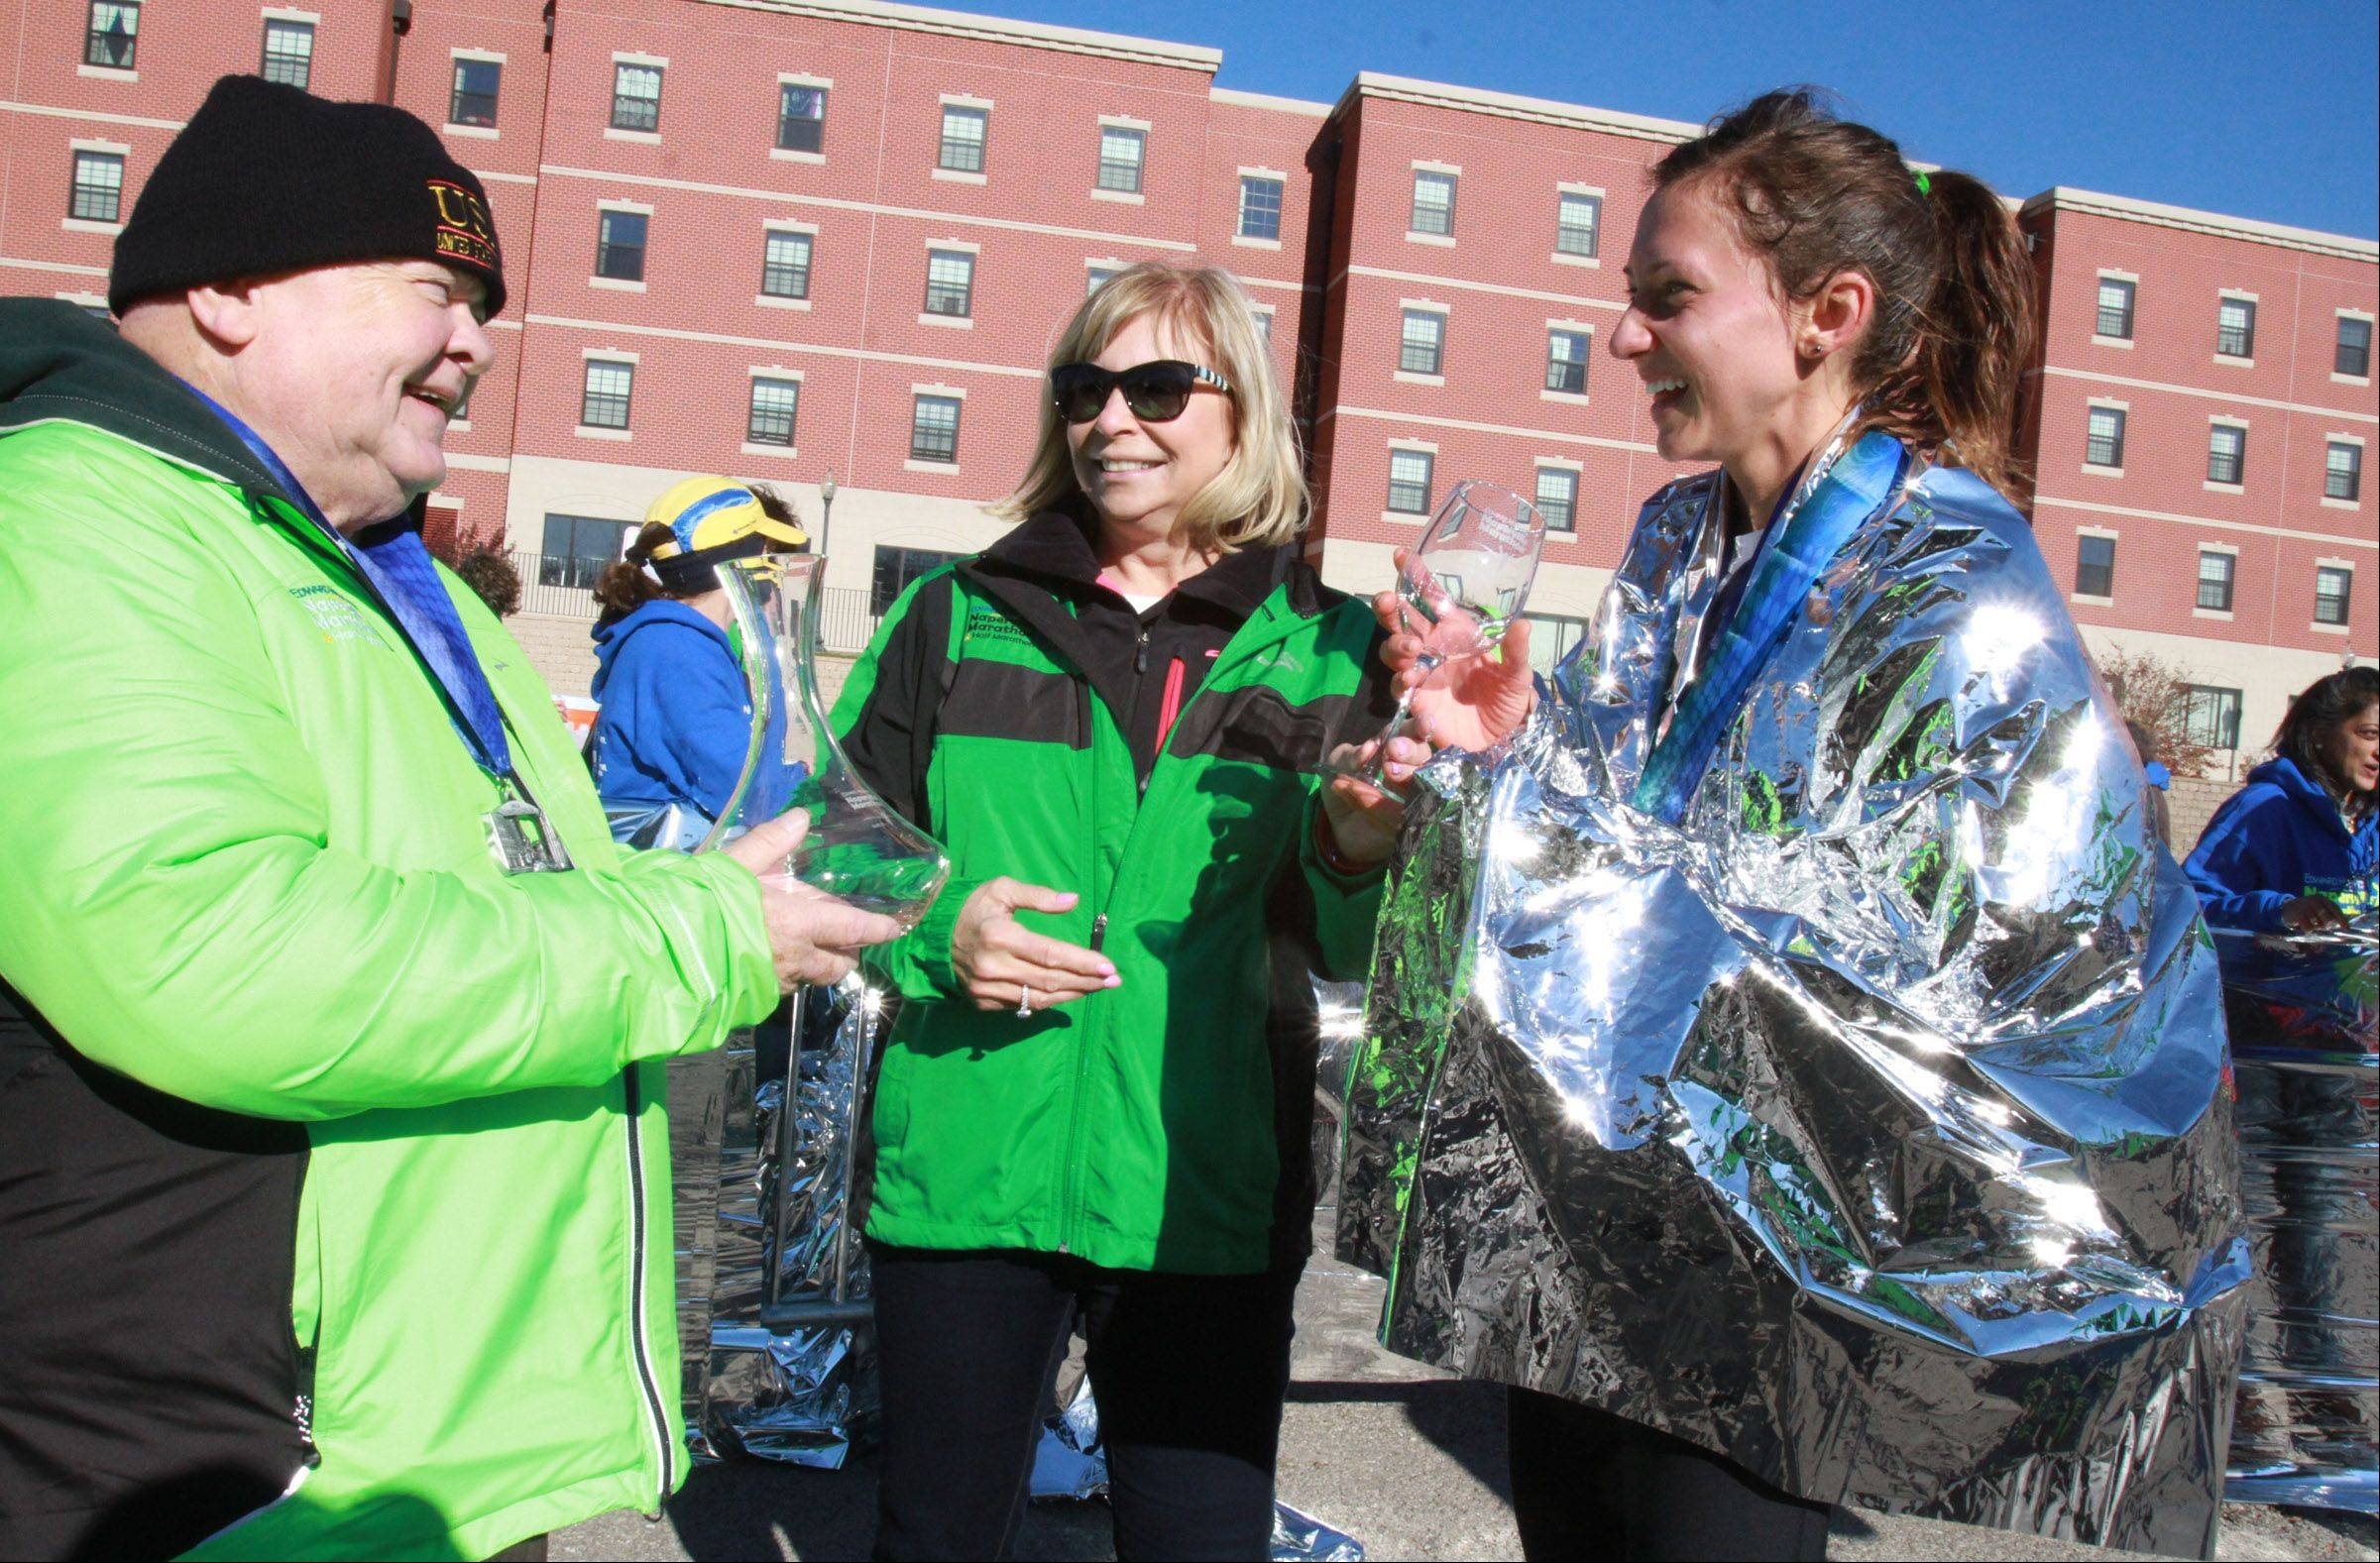 Amanda Mirochna of Naperville is greeted Sunday by Mayor George Pradel and Pam Davis, CEO of the Edward Hospital and Elmhurst Memorial Healthcare system, after turning in the fastest time in the women's marathon at 2:50:15.